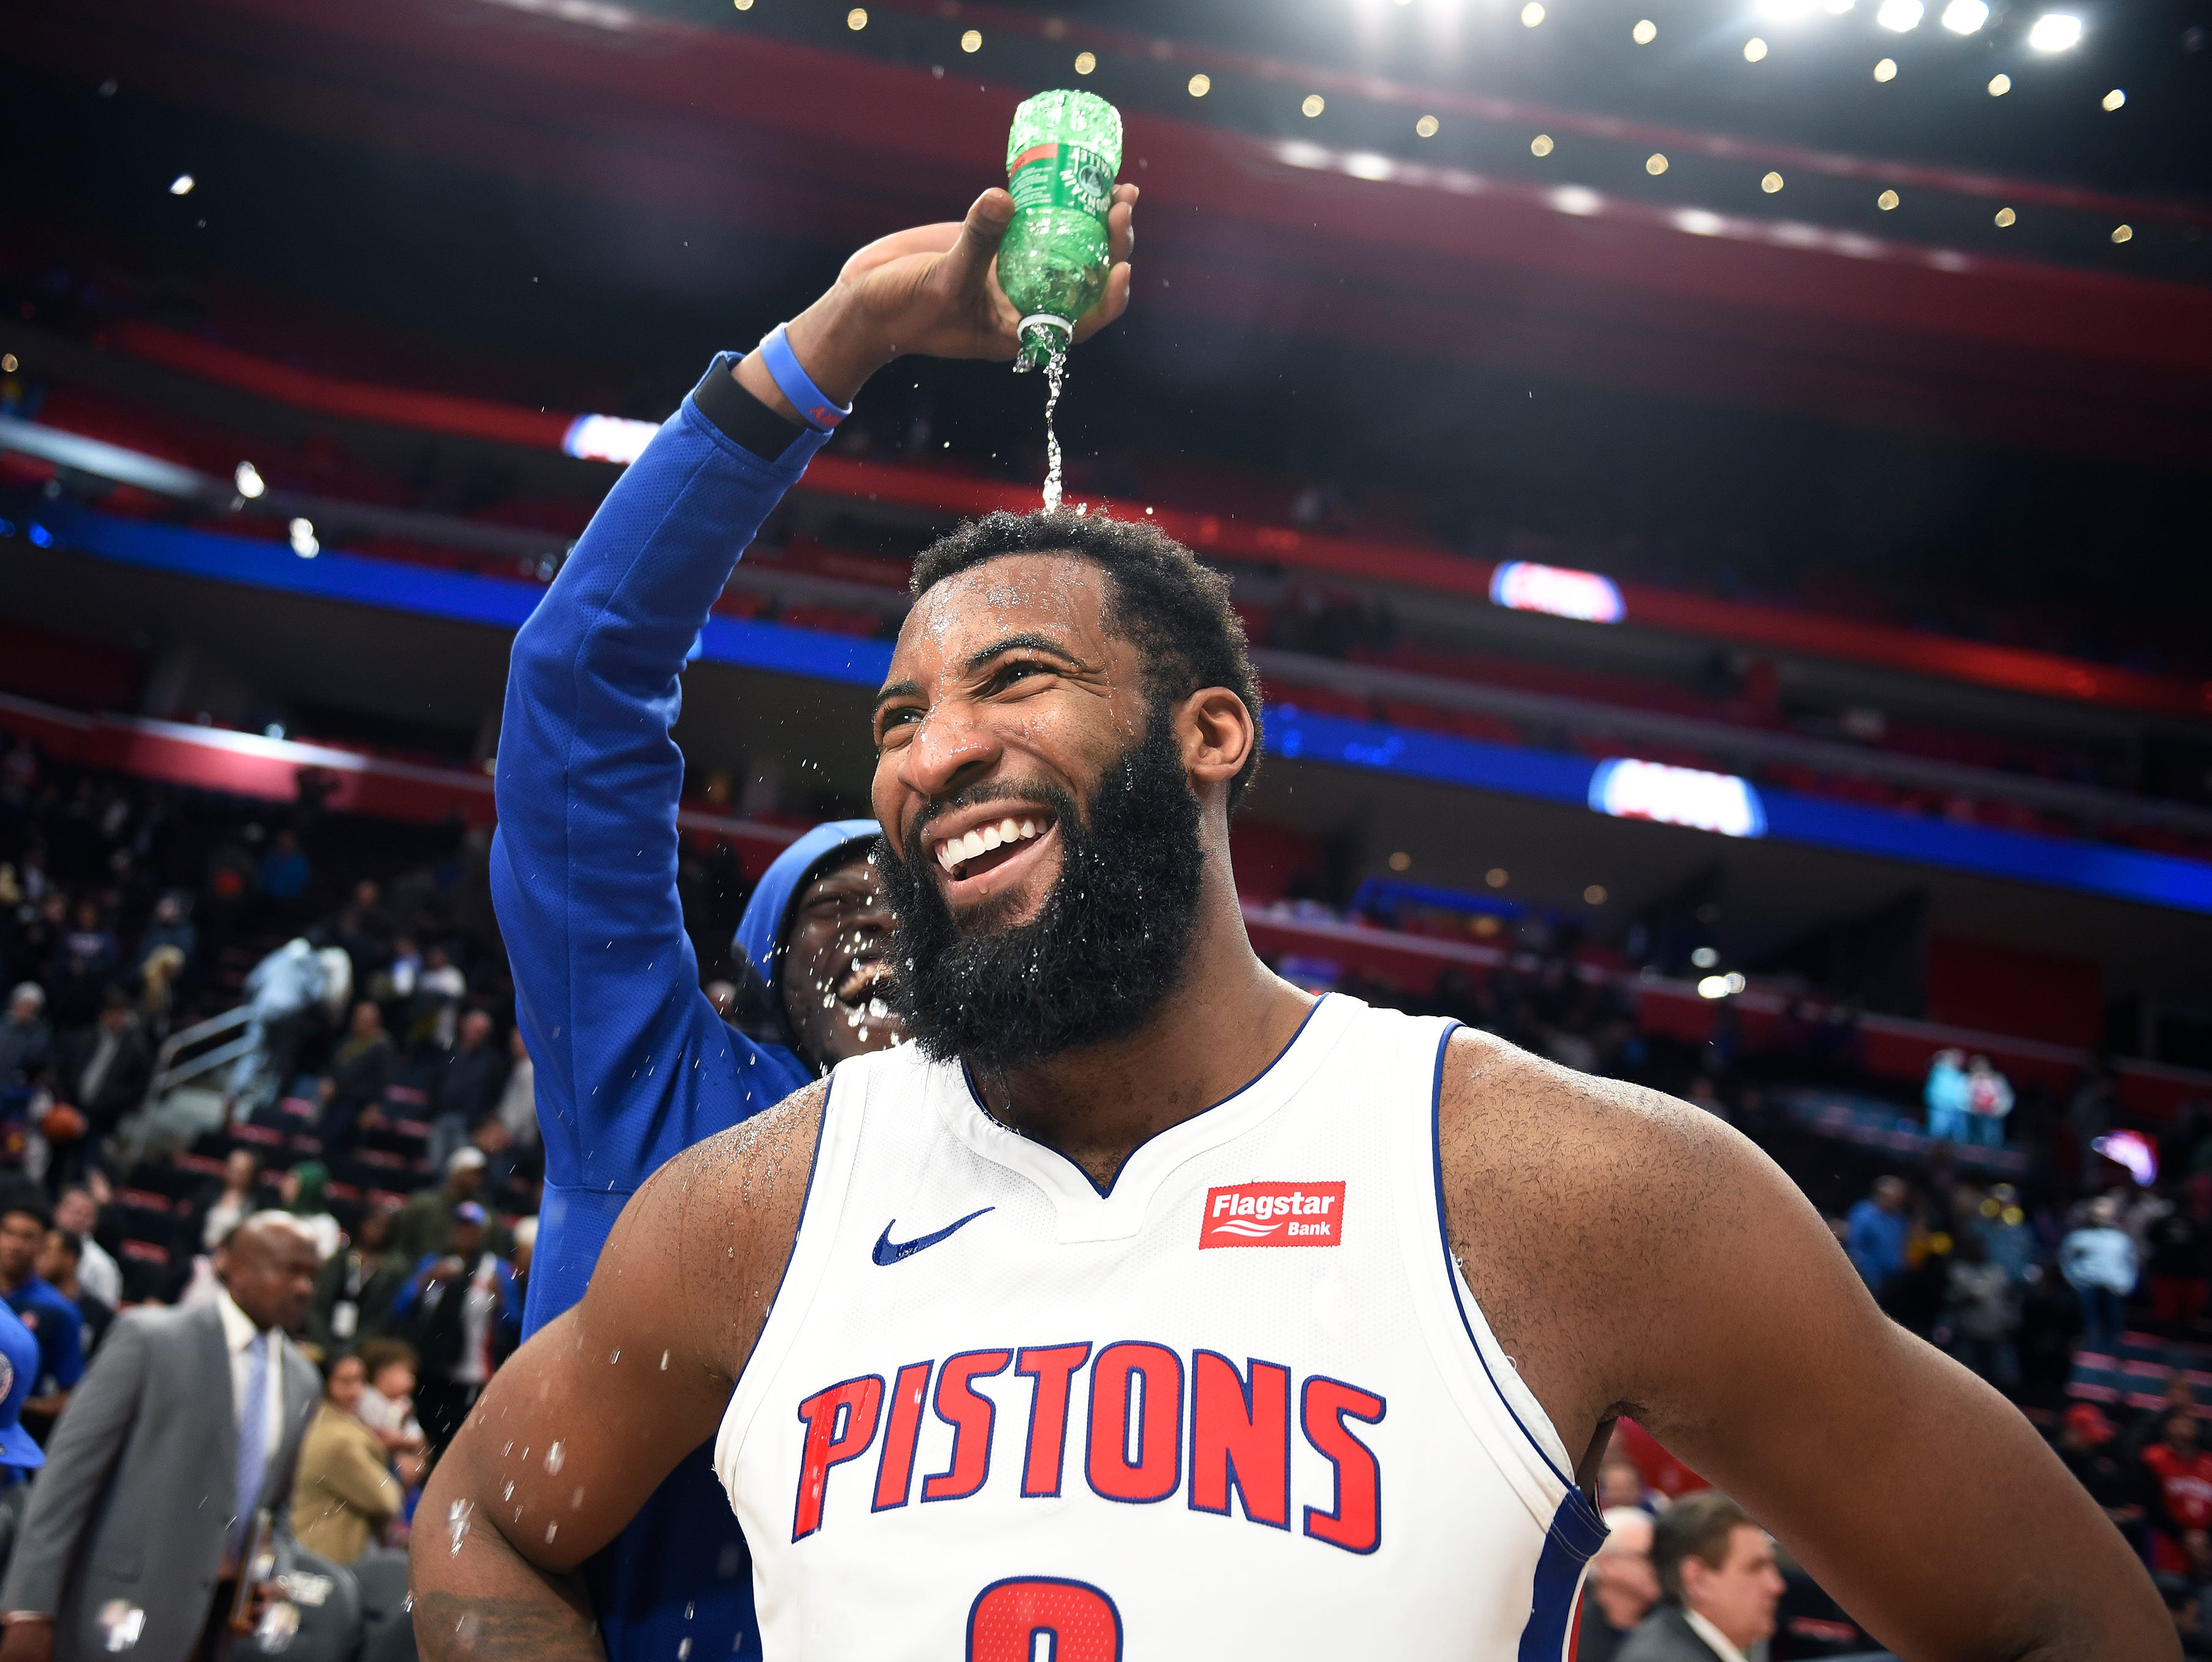 Pistons' Andre Drummond receives a shower from Reggie Jackson during his postgame interview.